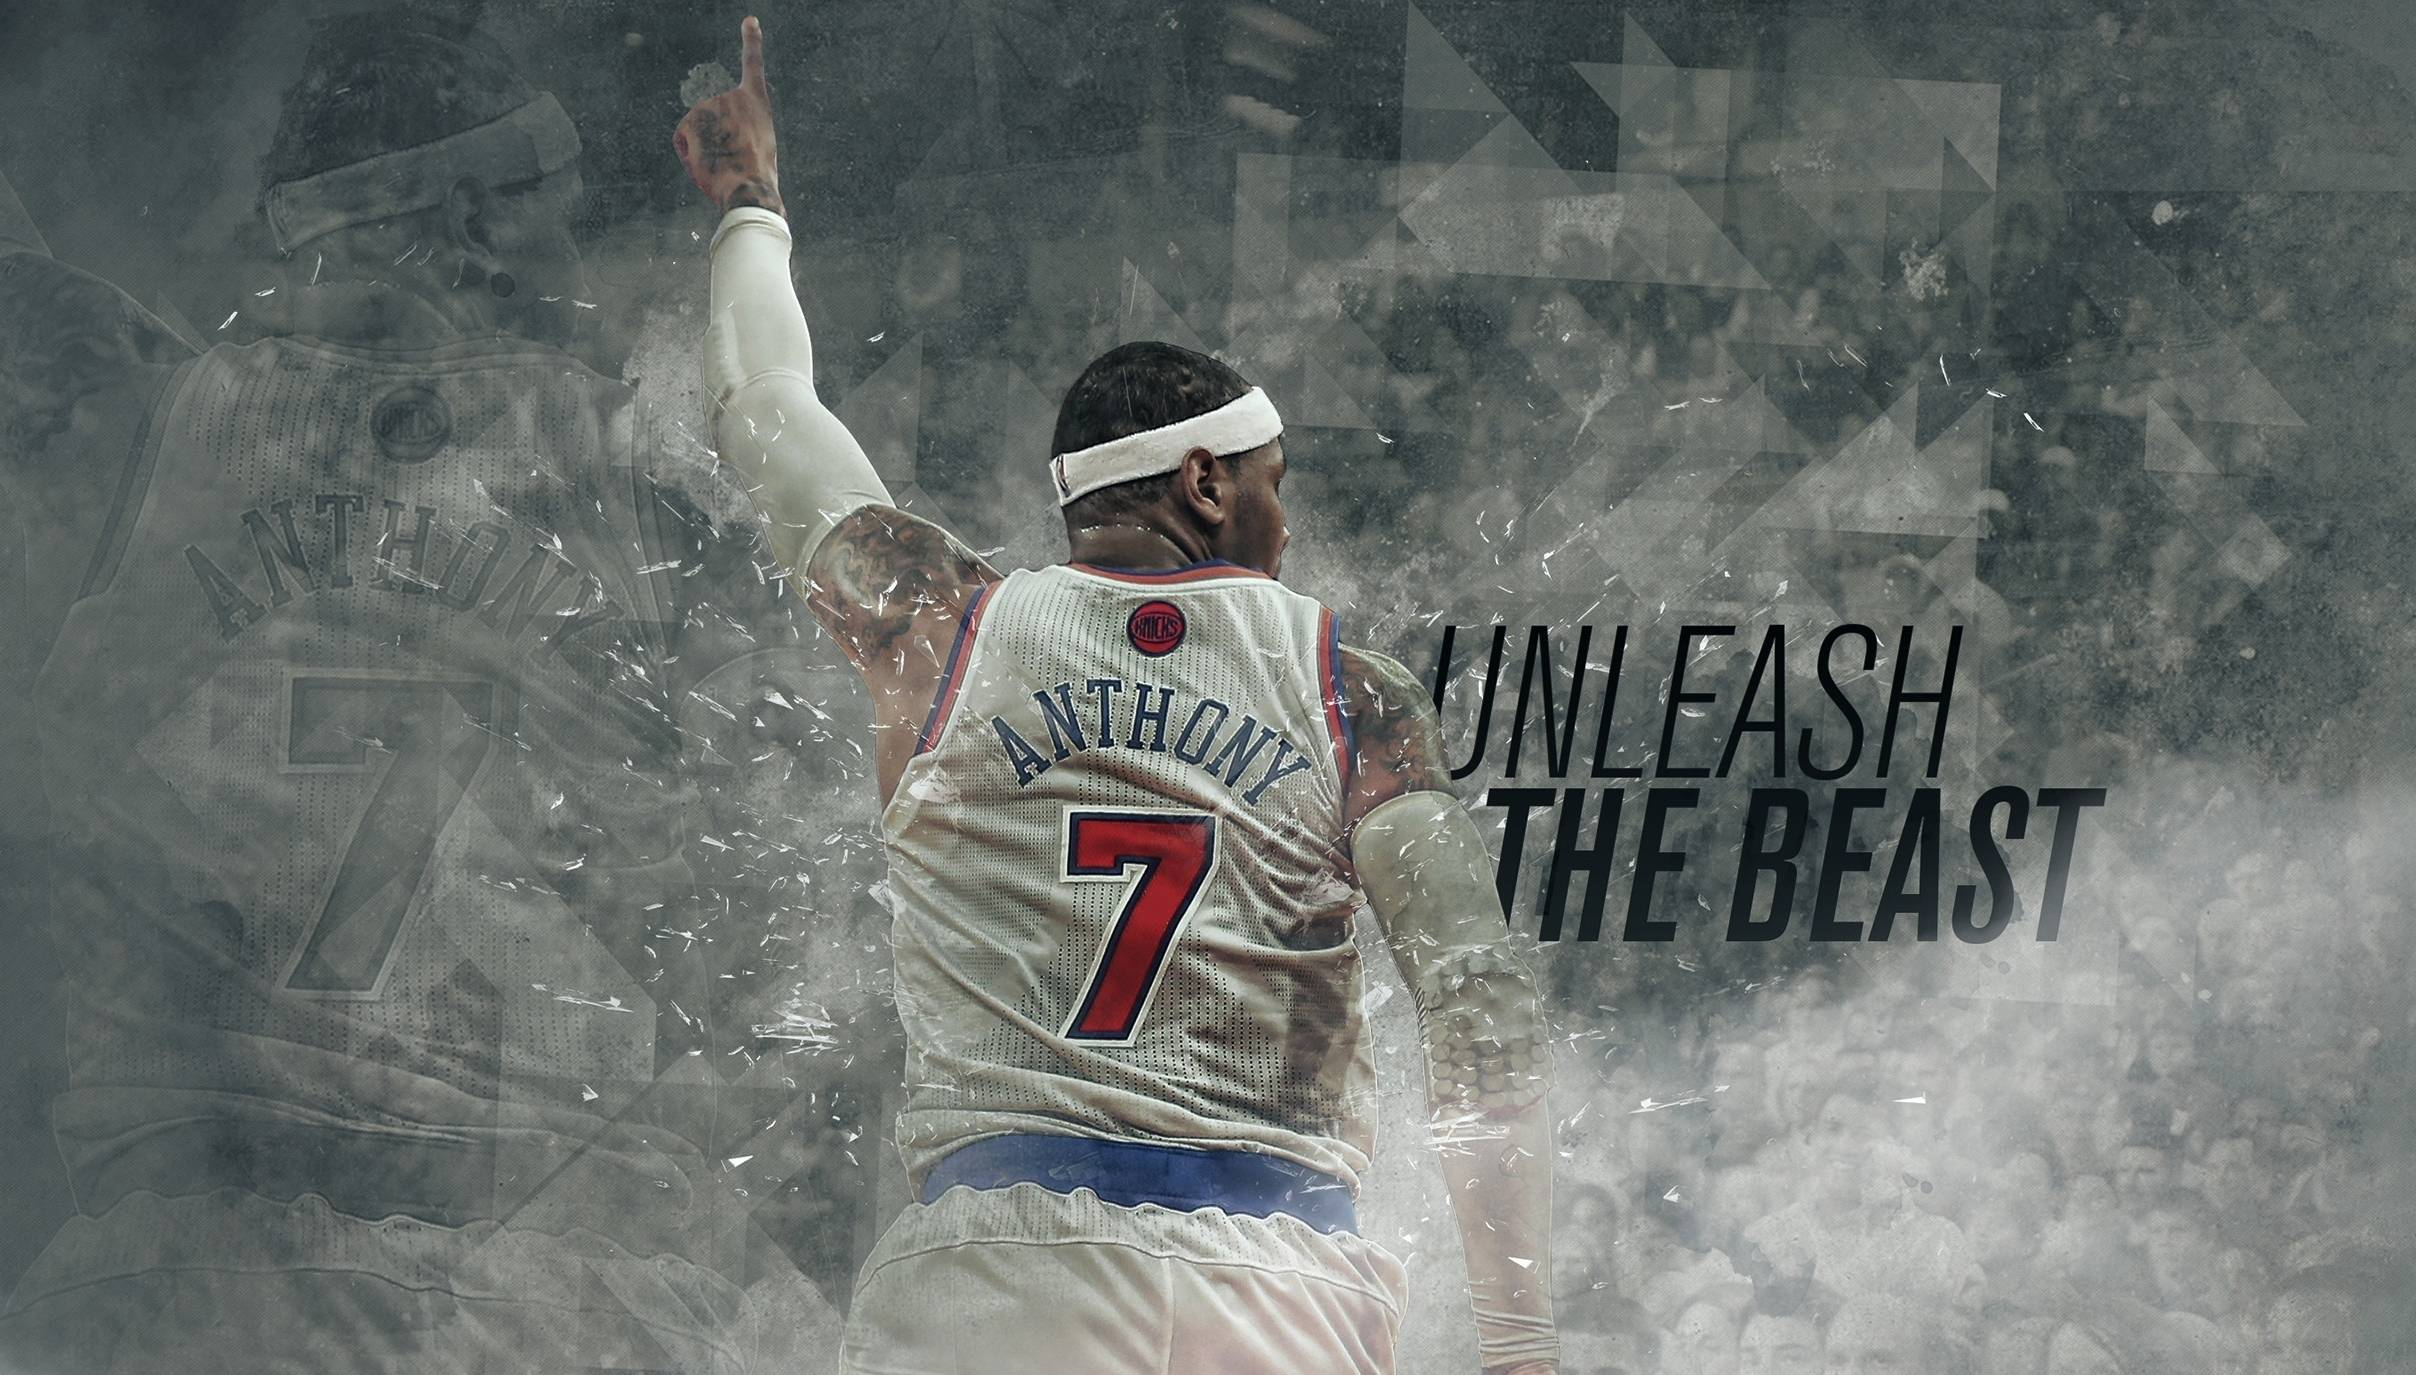 carmelo anthony wallpaper download